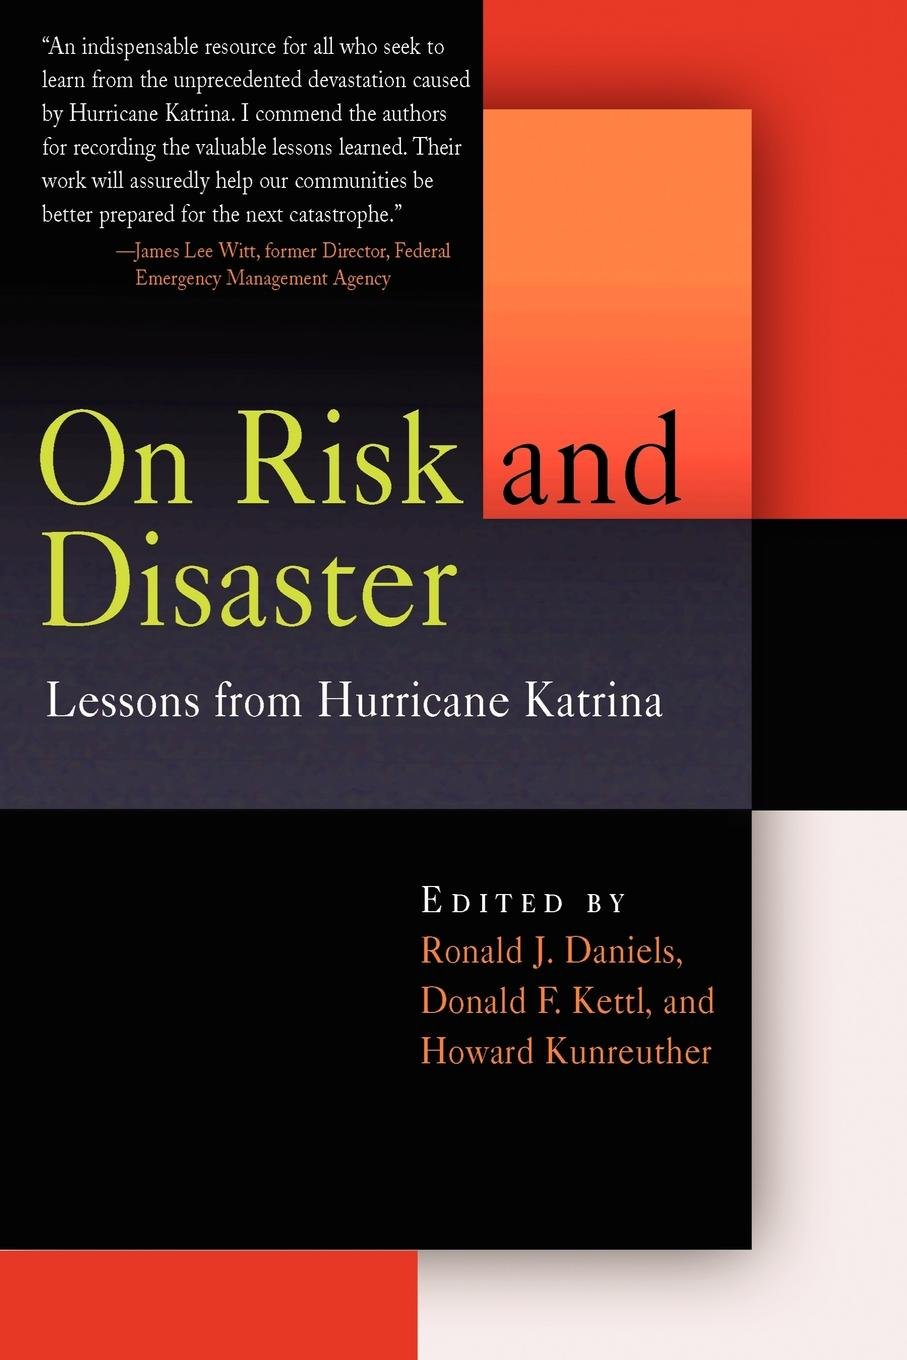 Download On Risk and Disaster: Lessons from Hurricane Katrina PDF